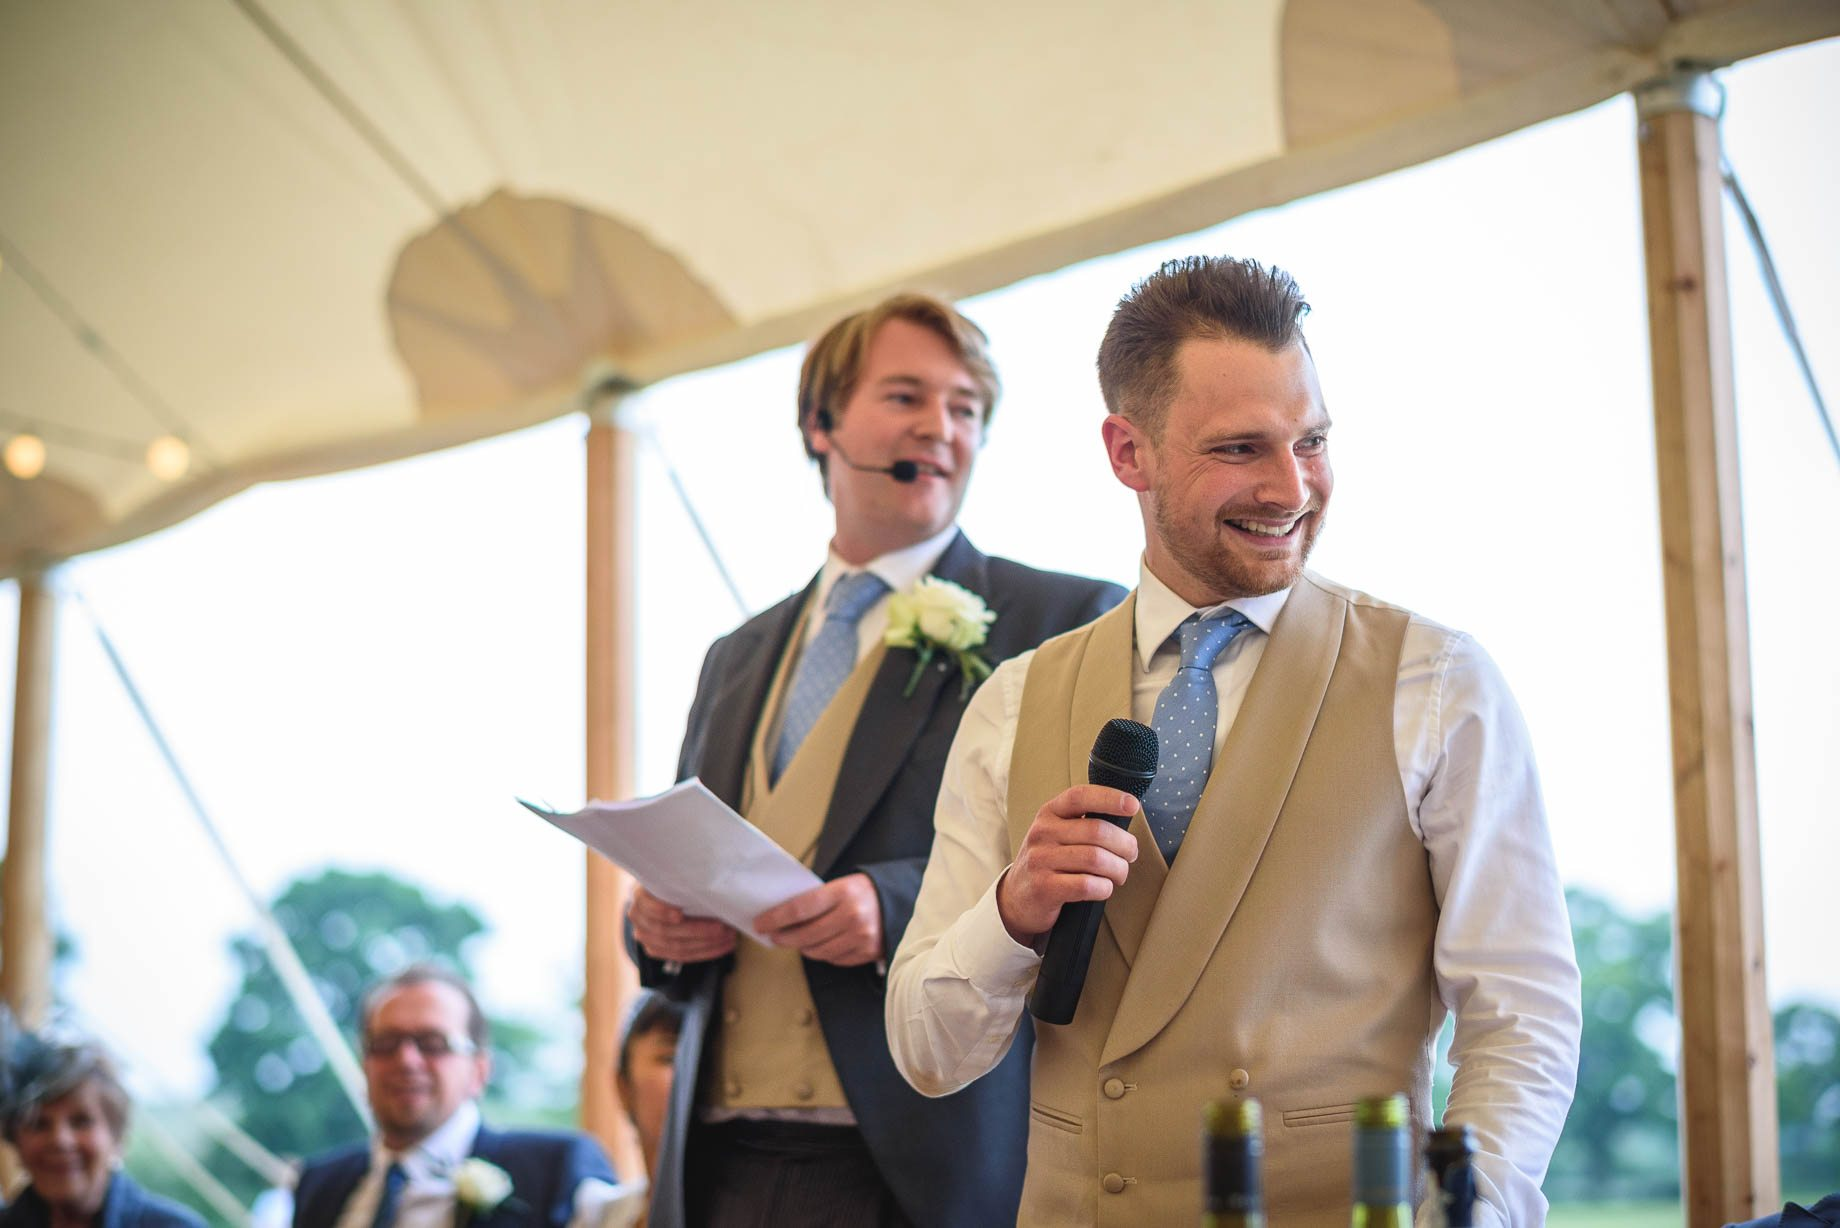 Wiltshire wedding photography by Guy Collier - Lucie and Matt (169 of 198)